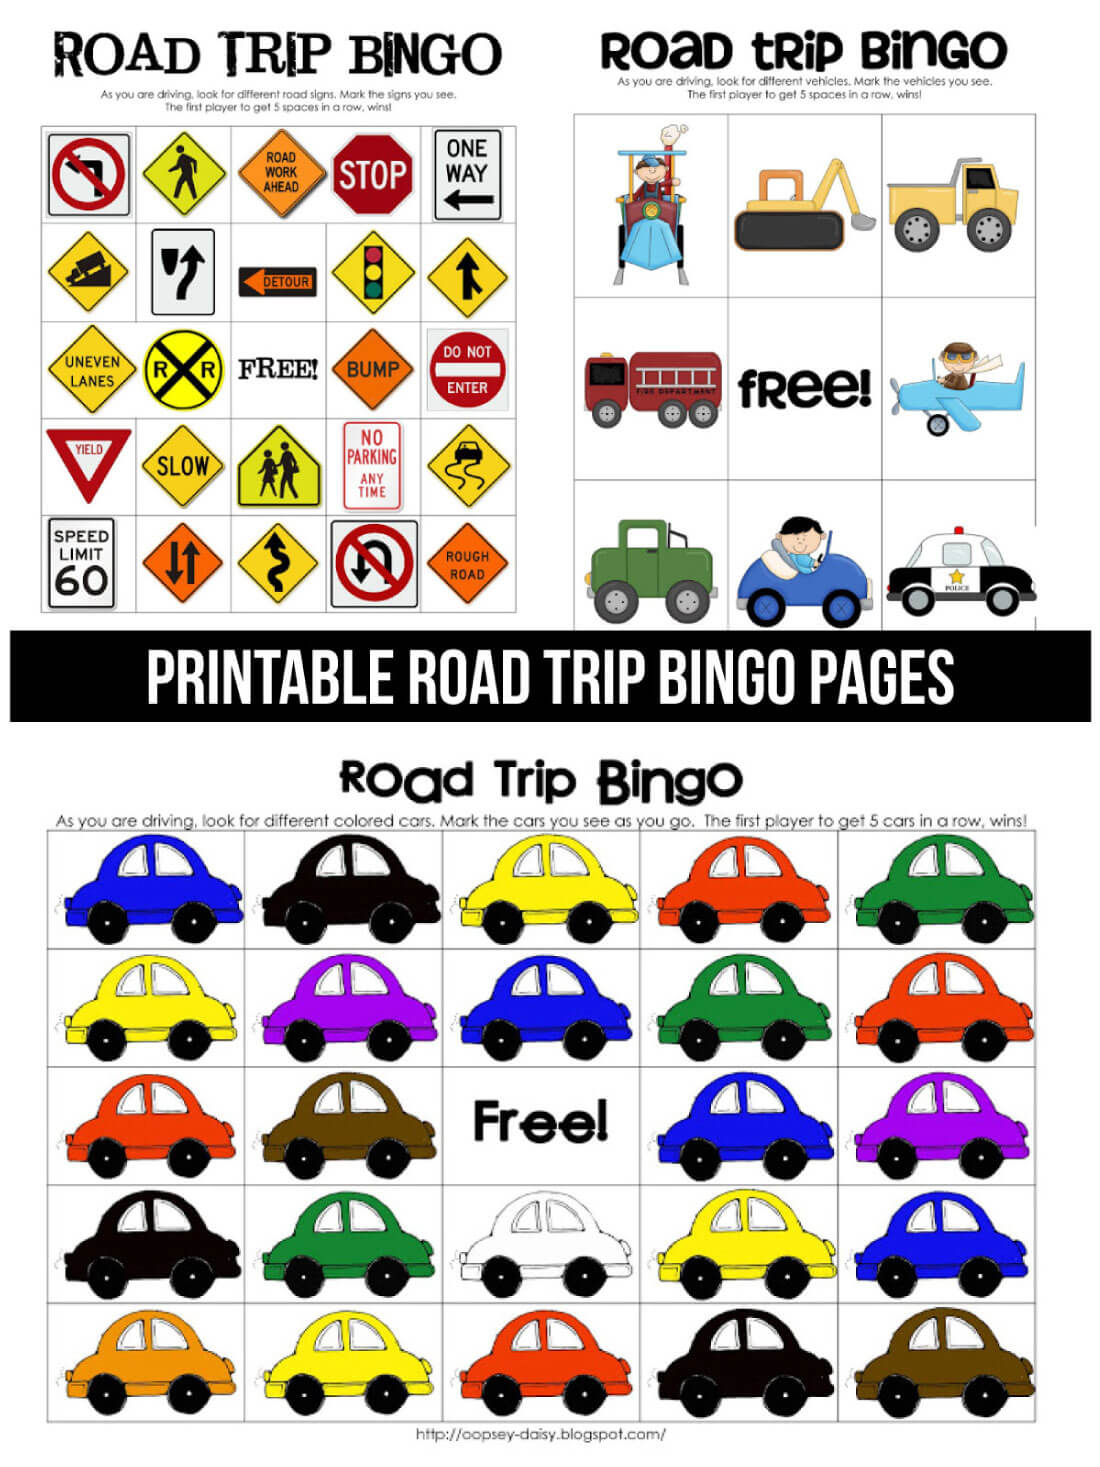 Printable Road Trip Bingo - Free Printable Car Bingo